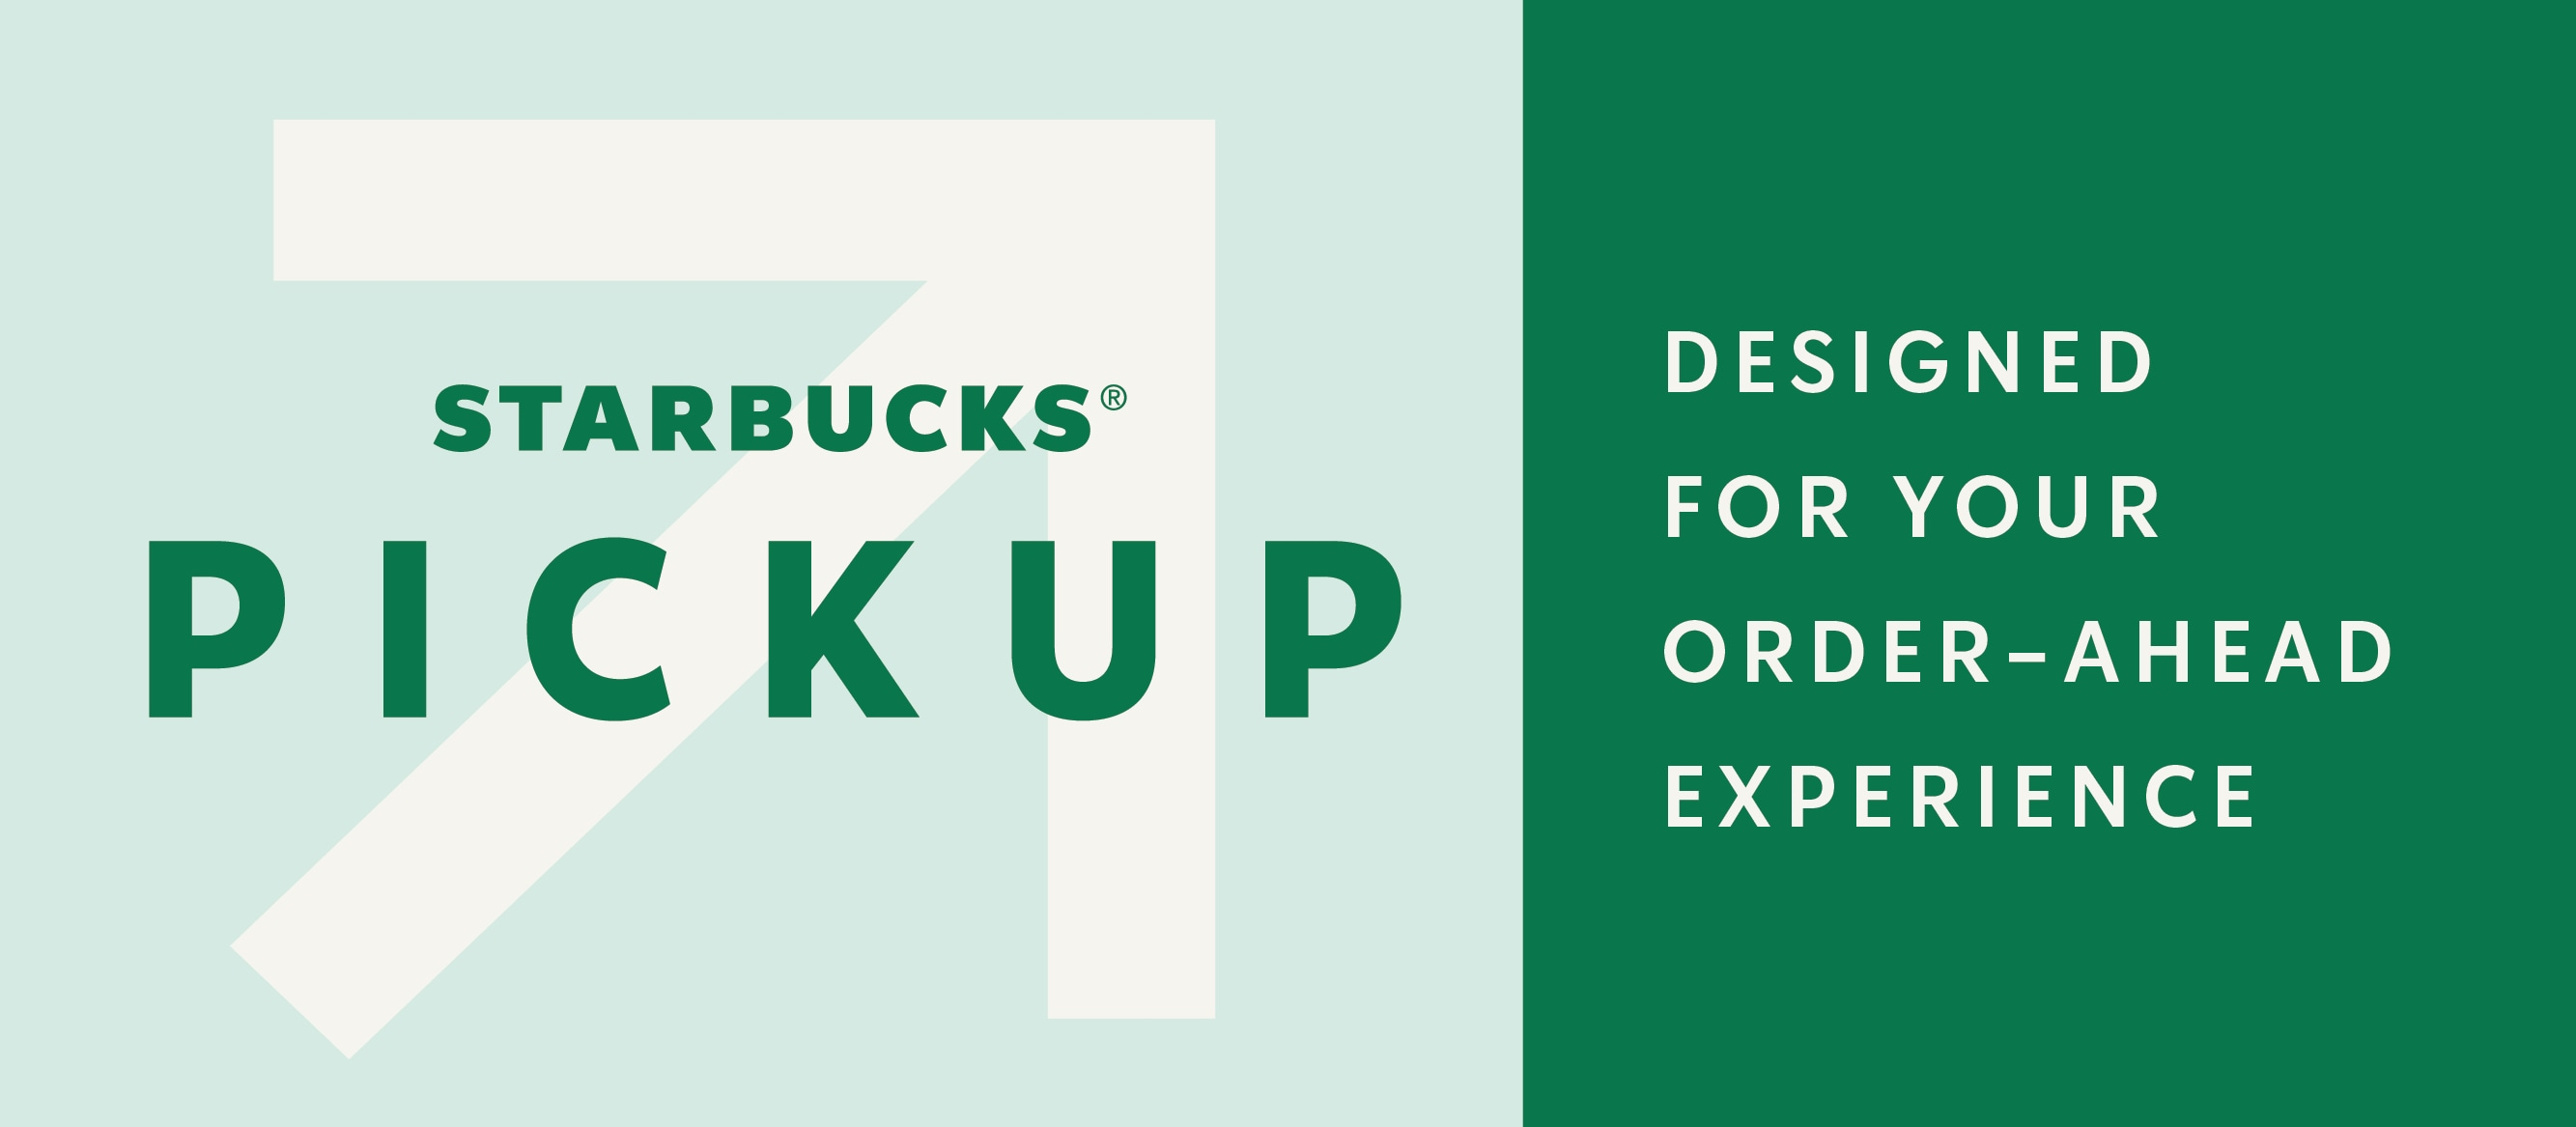 Starbucks® Pickup: Designed for your order-ahead experience